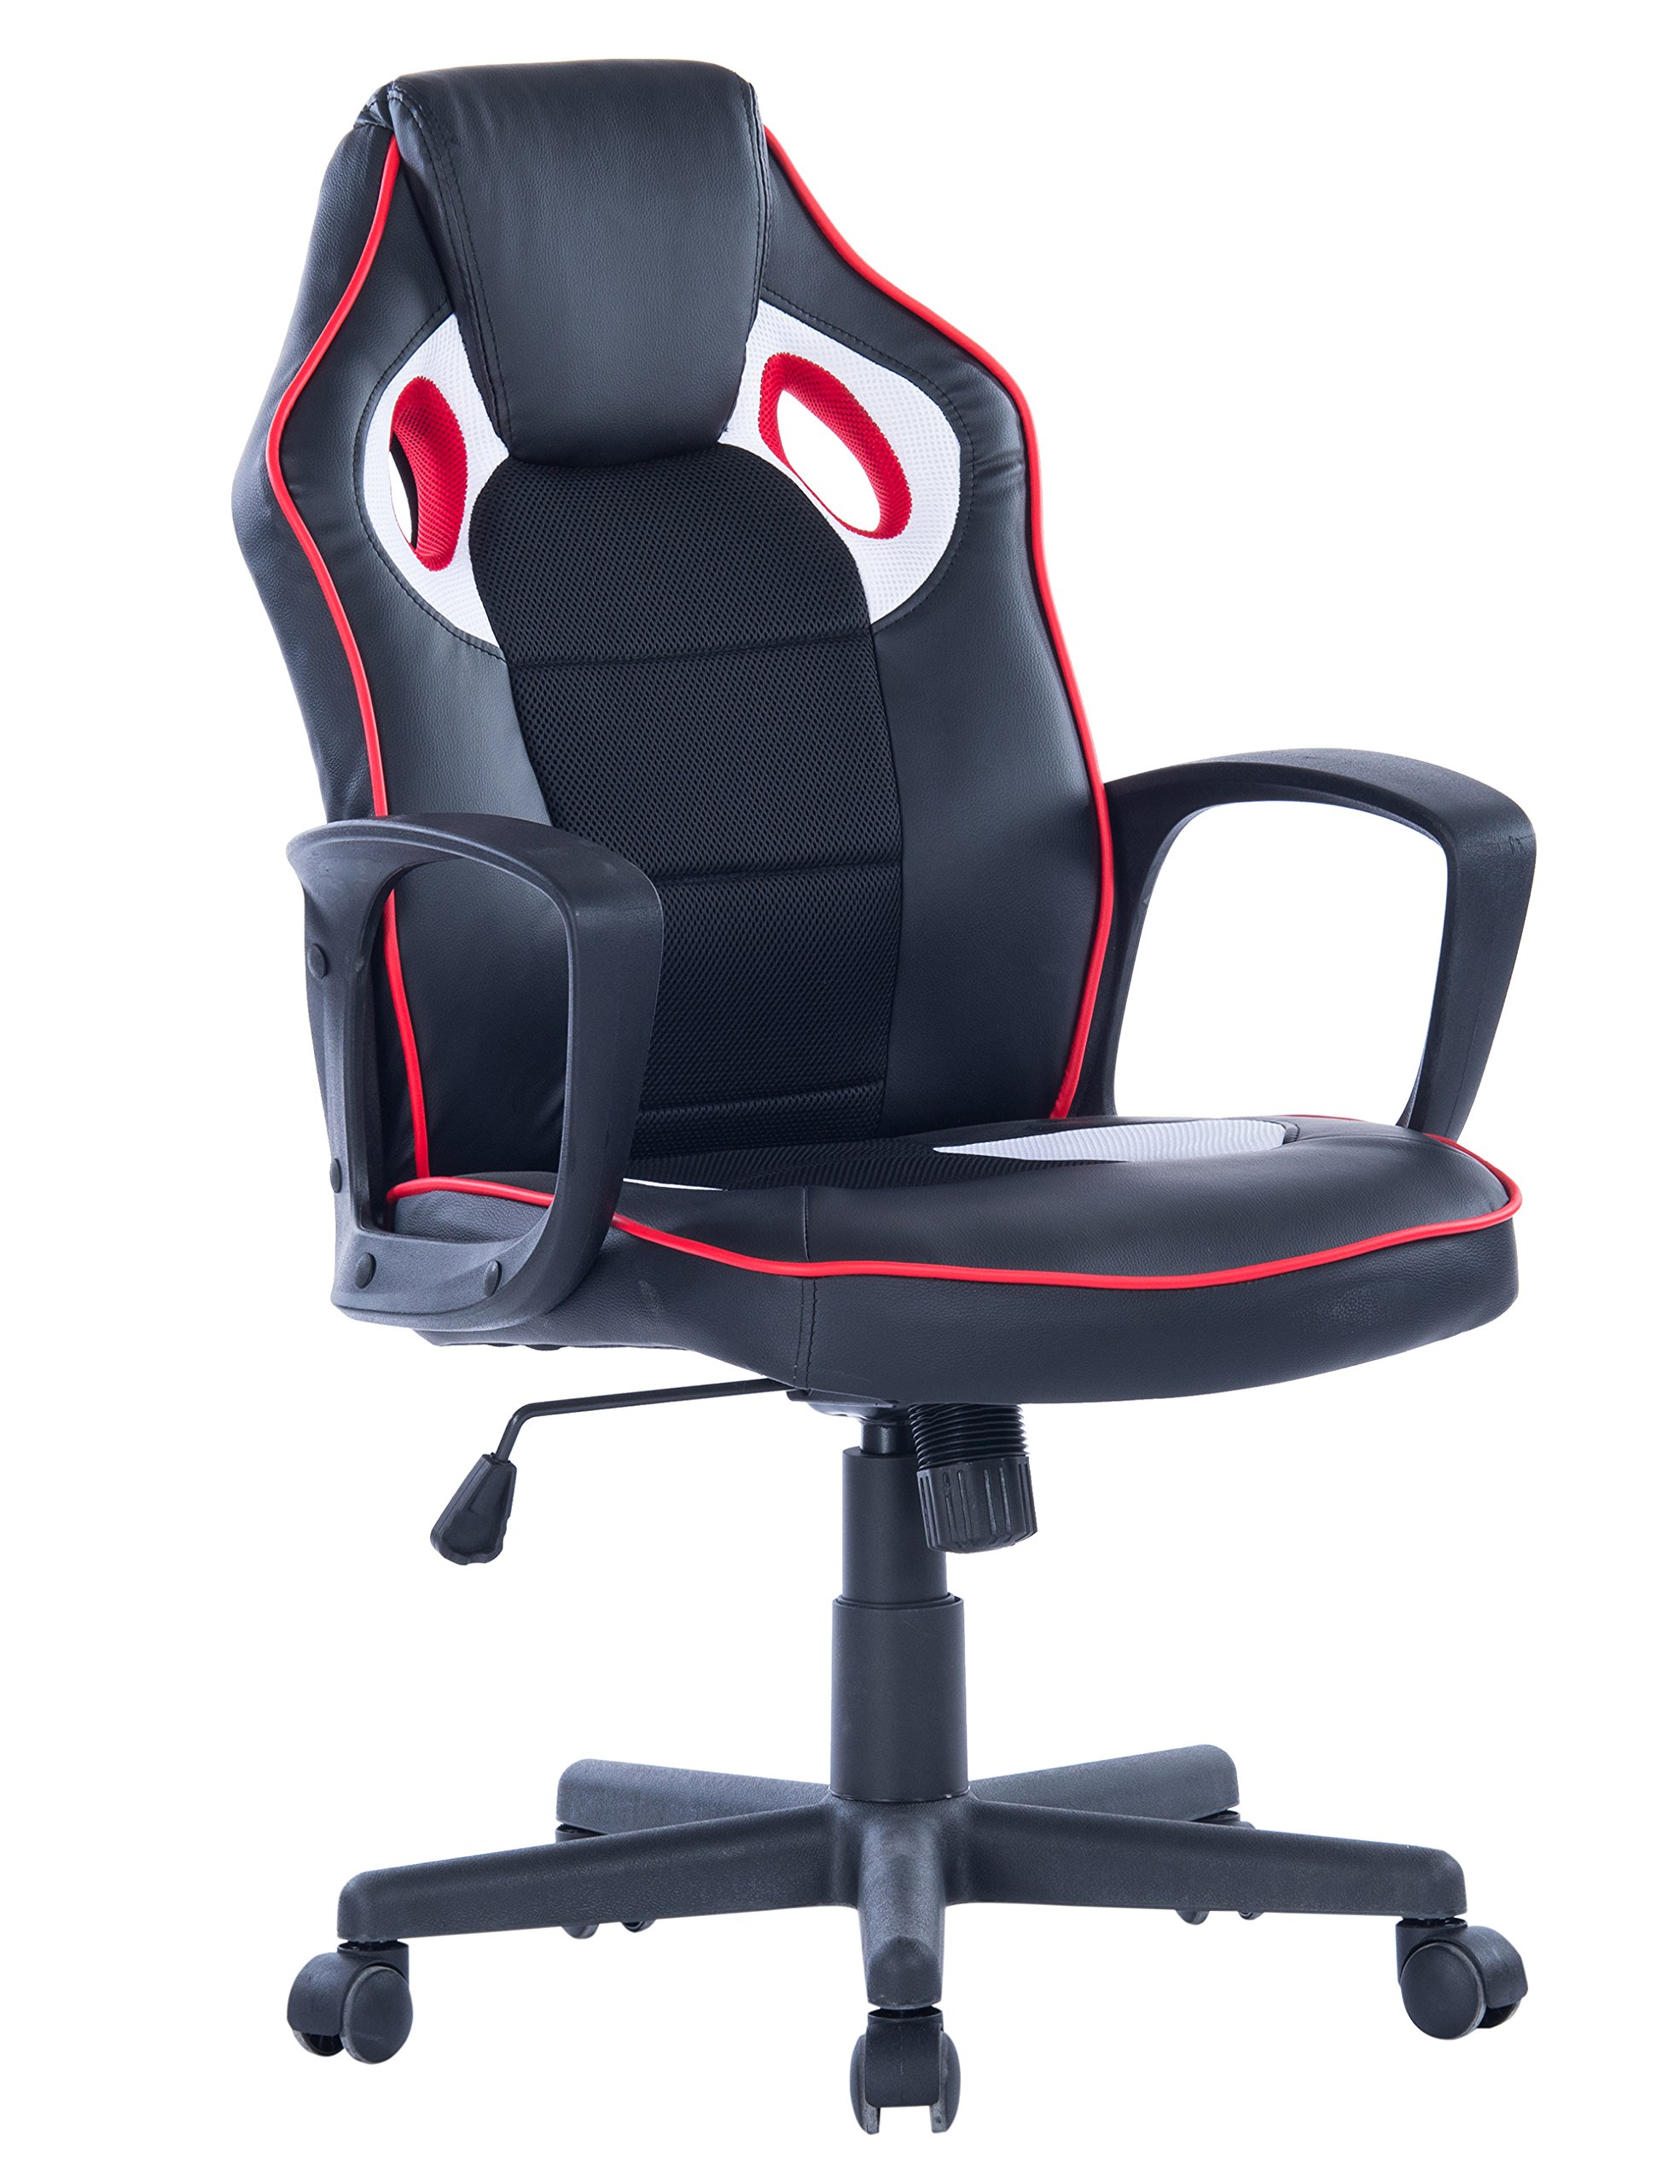 Killbee Ergonomic Swivel Executive Office Gaming Chair Height Adjustable, With High-Back Upholstered PU Leather Desk Chair (Black)